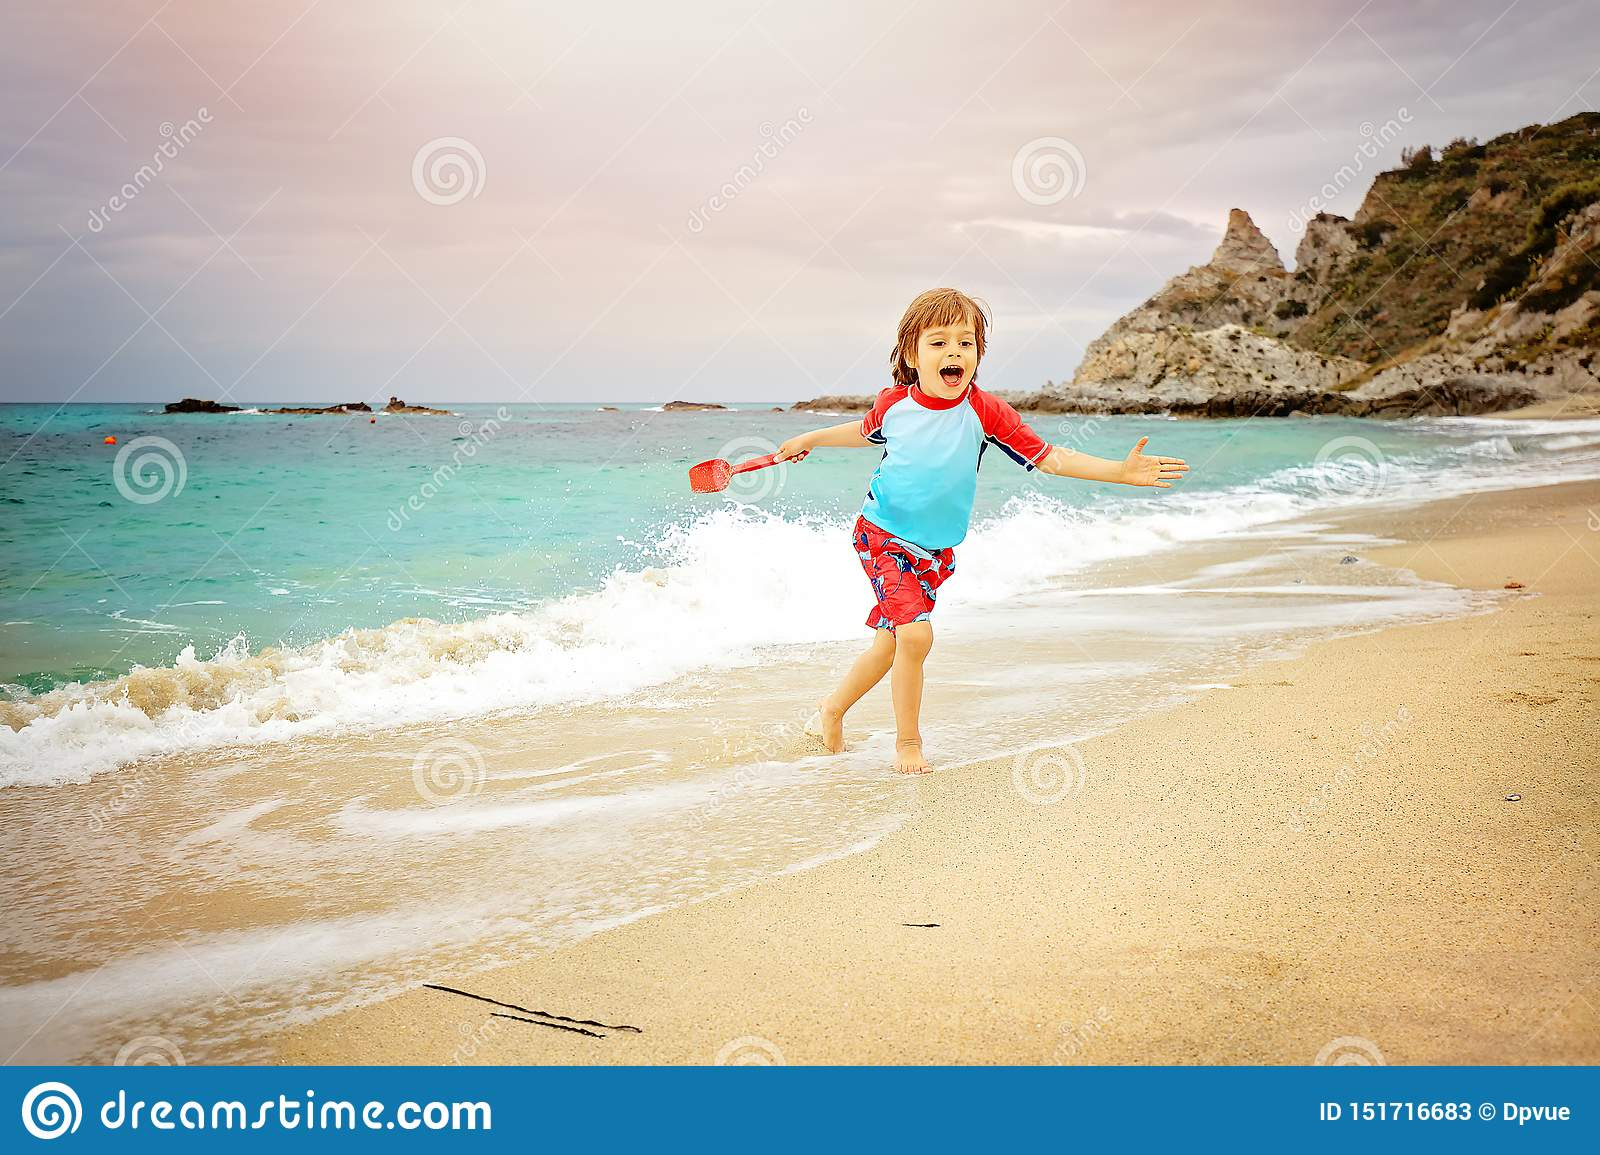 Adorable little boy having fun at the beach on vacation. Kid wearing swimming trunks and sun protection t-shot playing